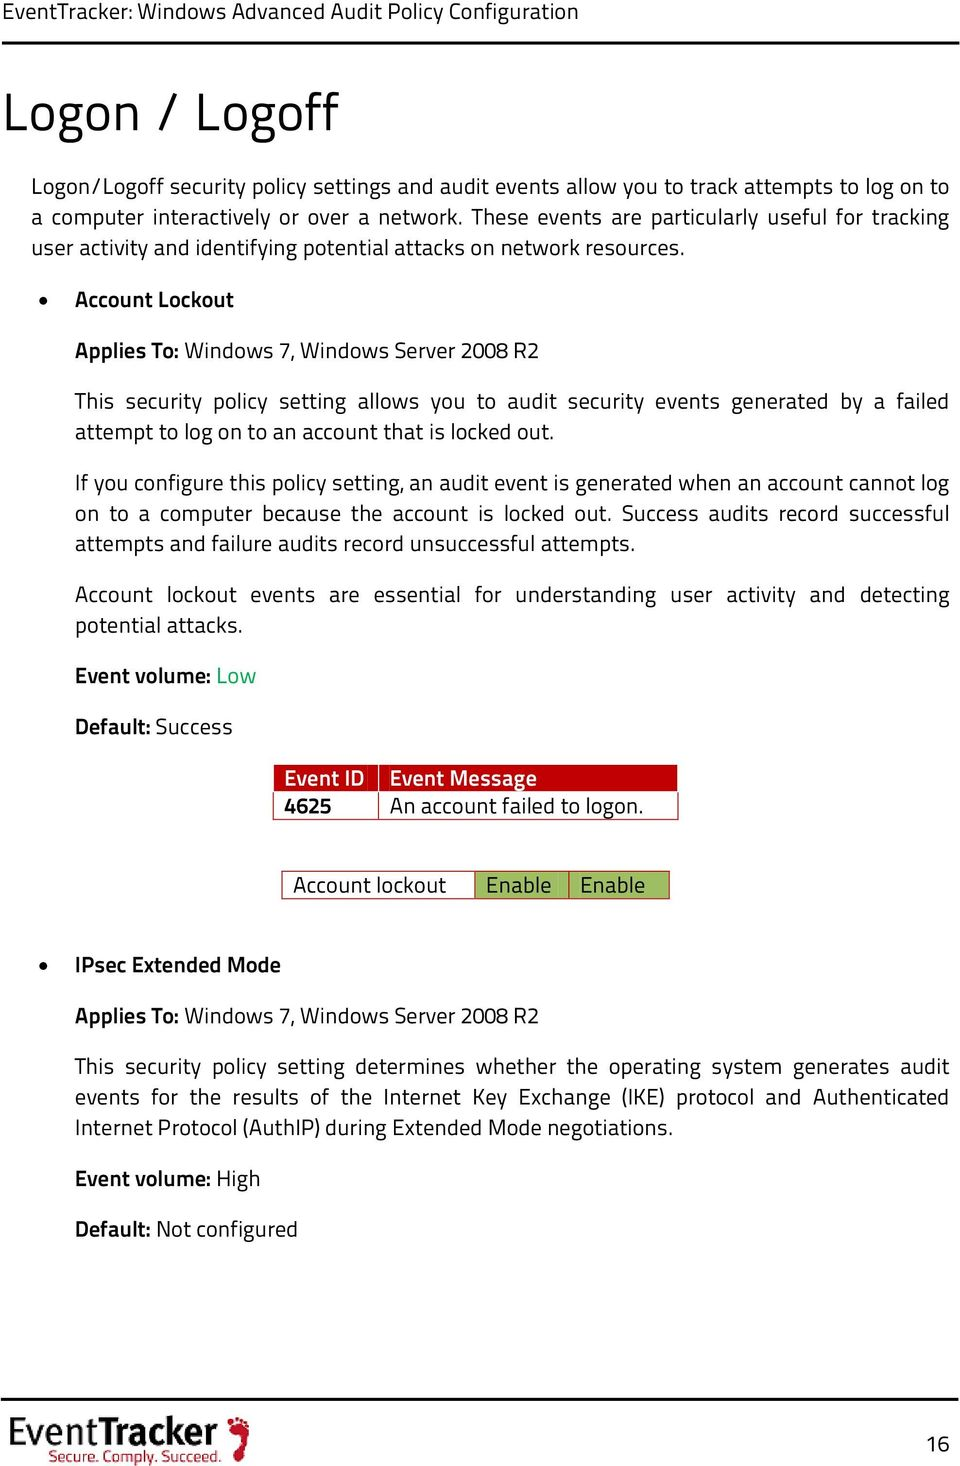 Windows Advanced Audit Policy Configuration - PDF